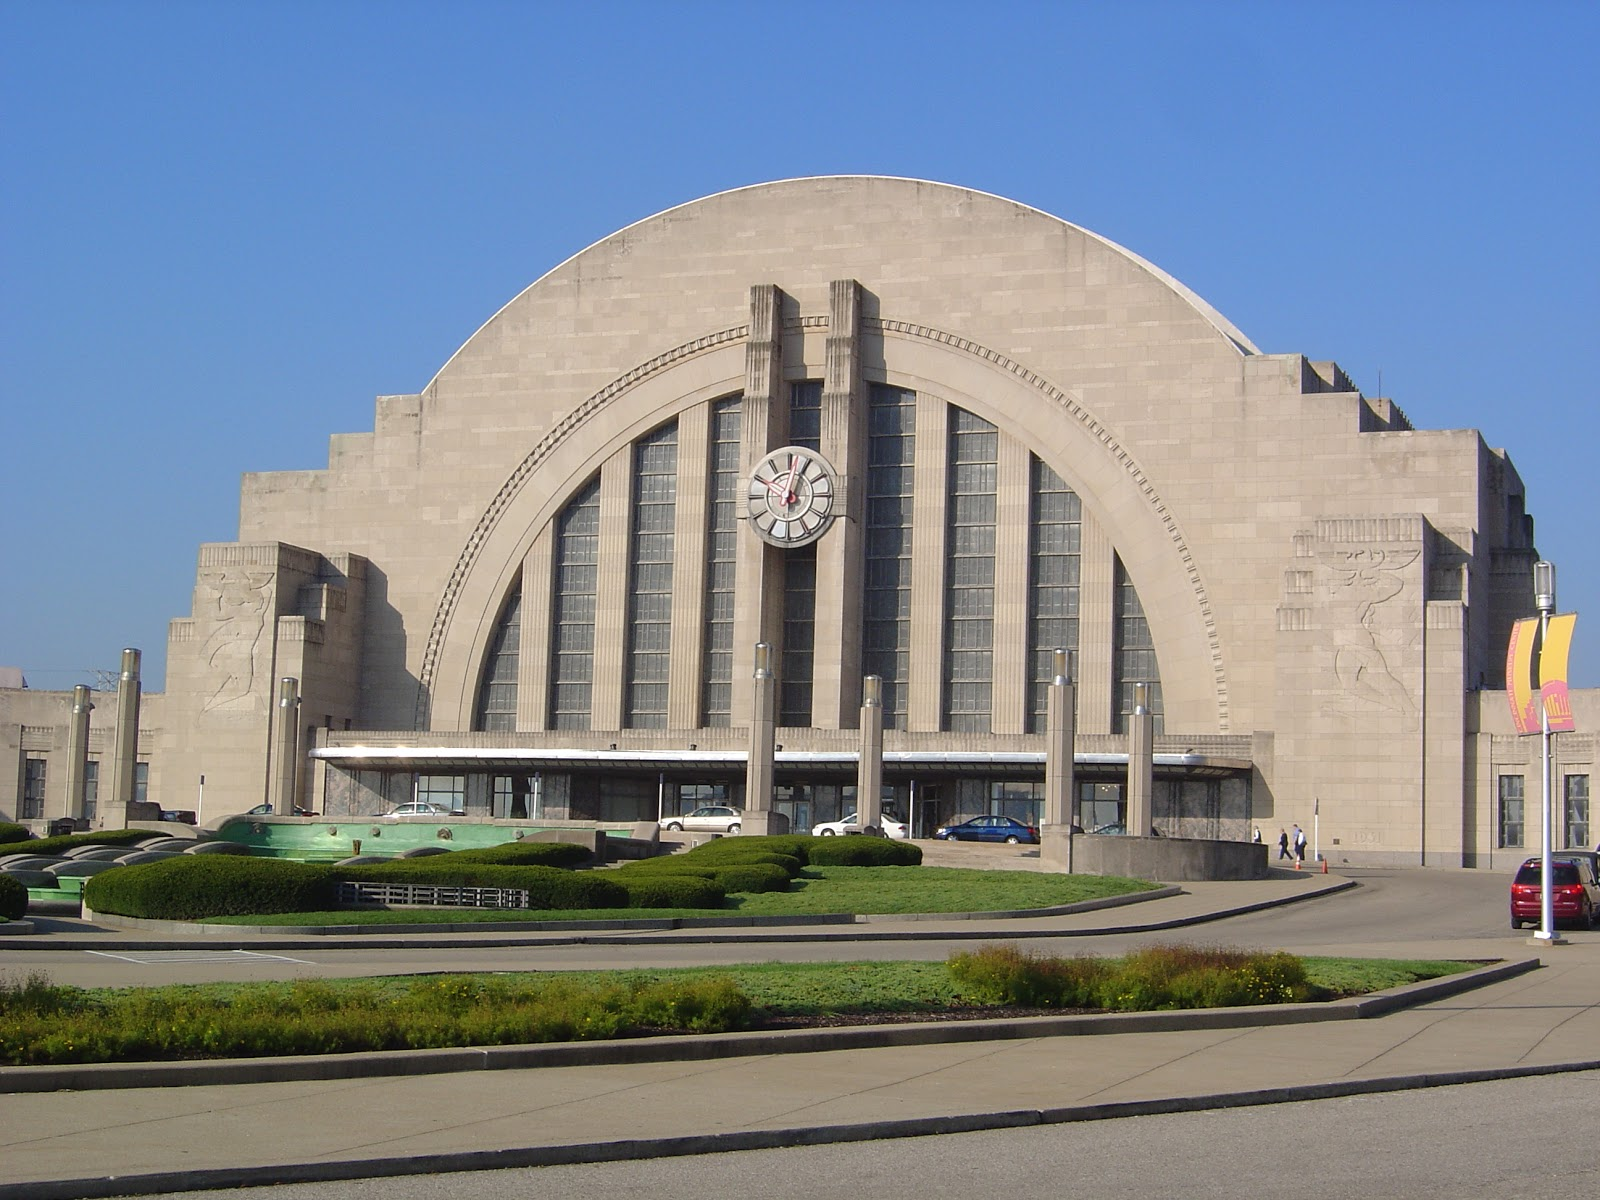 Home to three museums (Cincinnati History Museum, Duke Energy Children's Museum, and the Museum of Natural History & Science) plus the Robert D. Lindner Family OMNIMAX Theater and the Cincinnati Historical Society Library, Cincinnati Museum Center is housed in historic Union Terminal (recently restored after two-and-a-half years of work) and is.